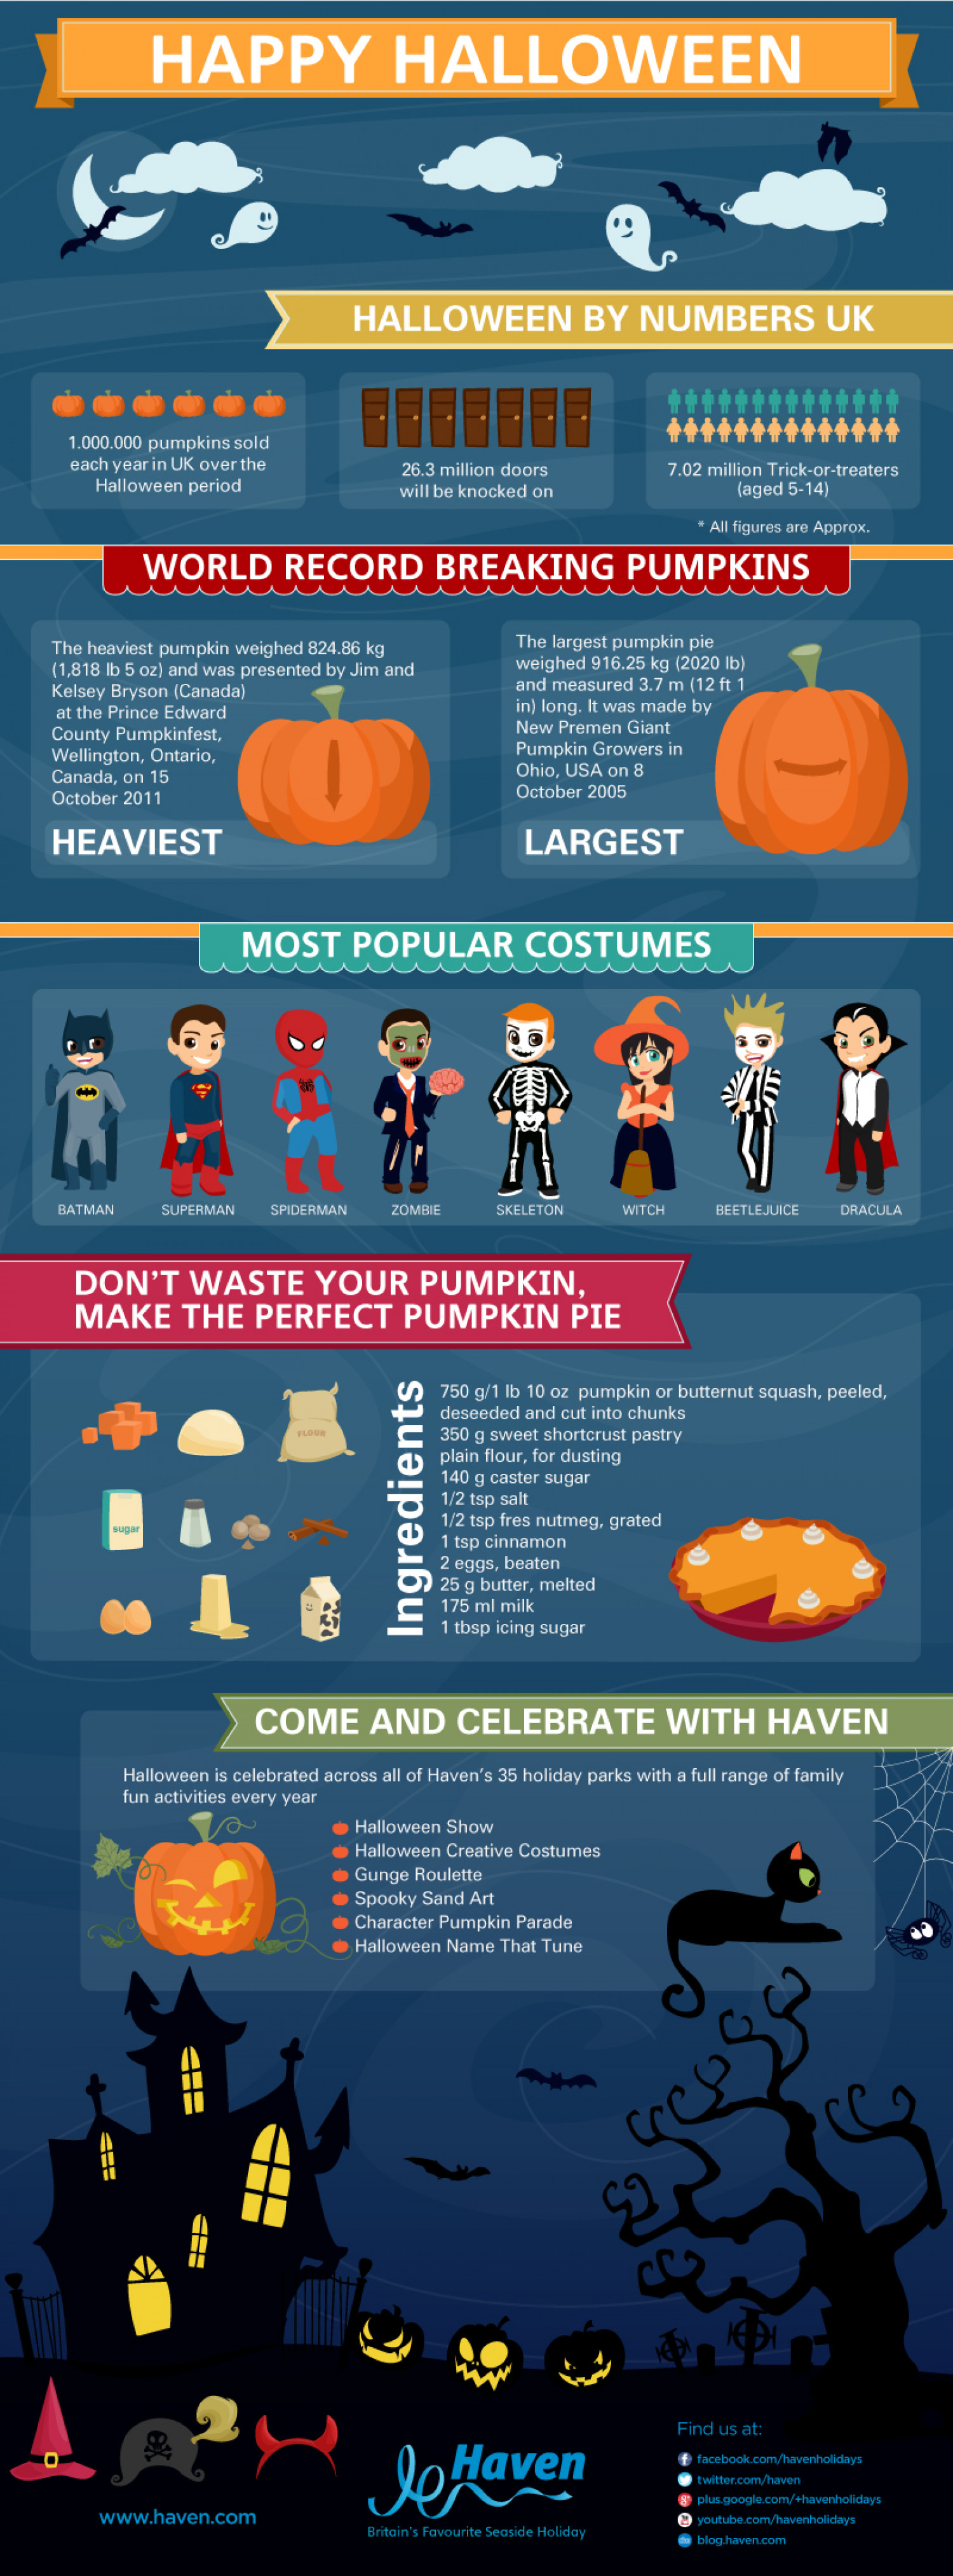 Haven's Halloween by Numbers Infographic